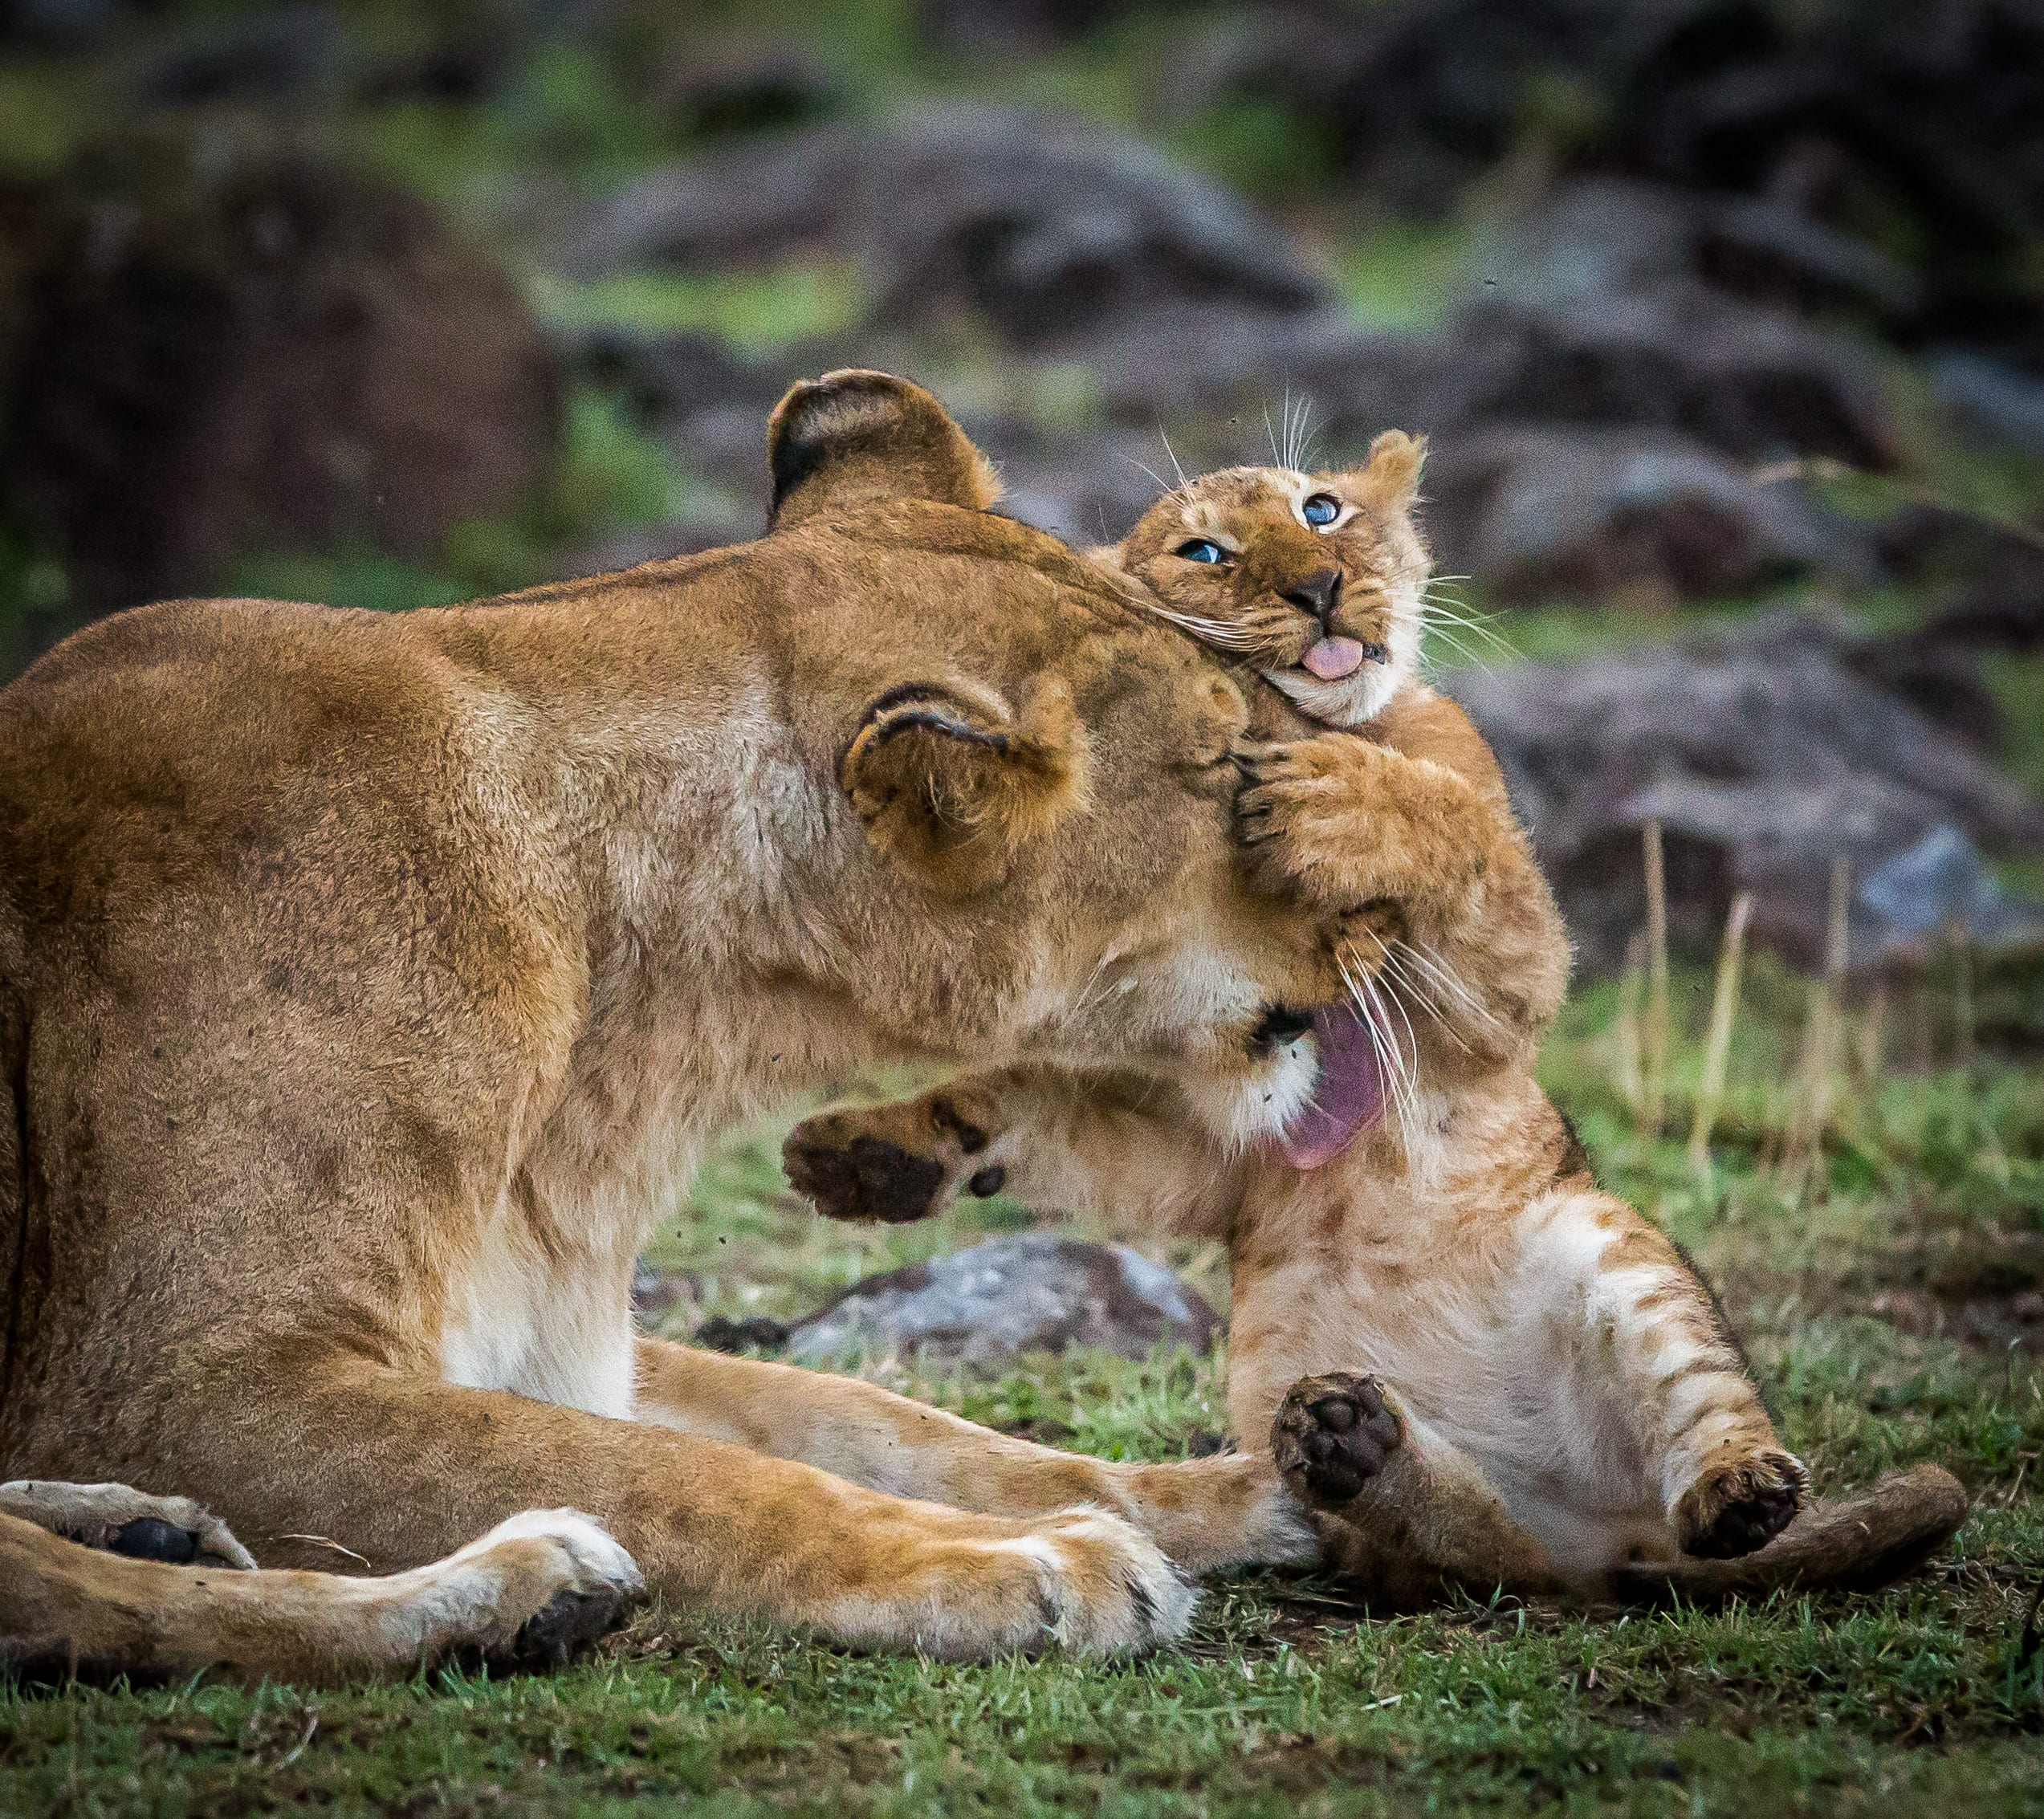 Lion mama with cub photo by Phil West